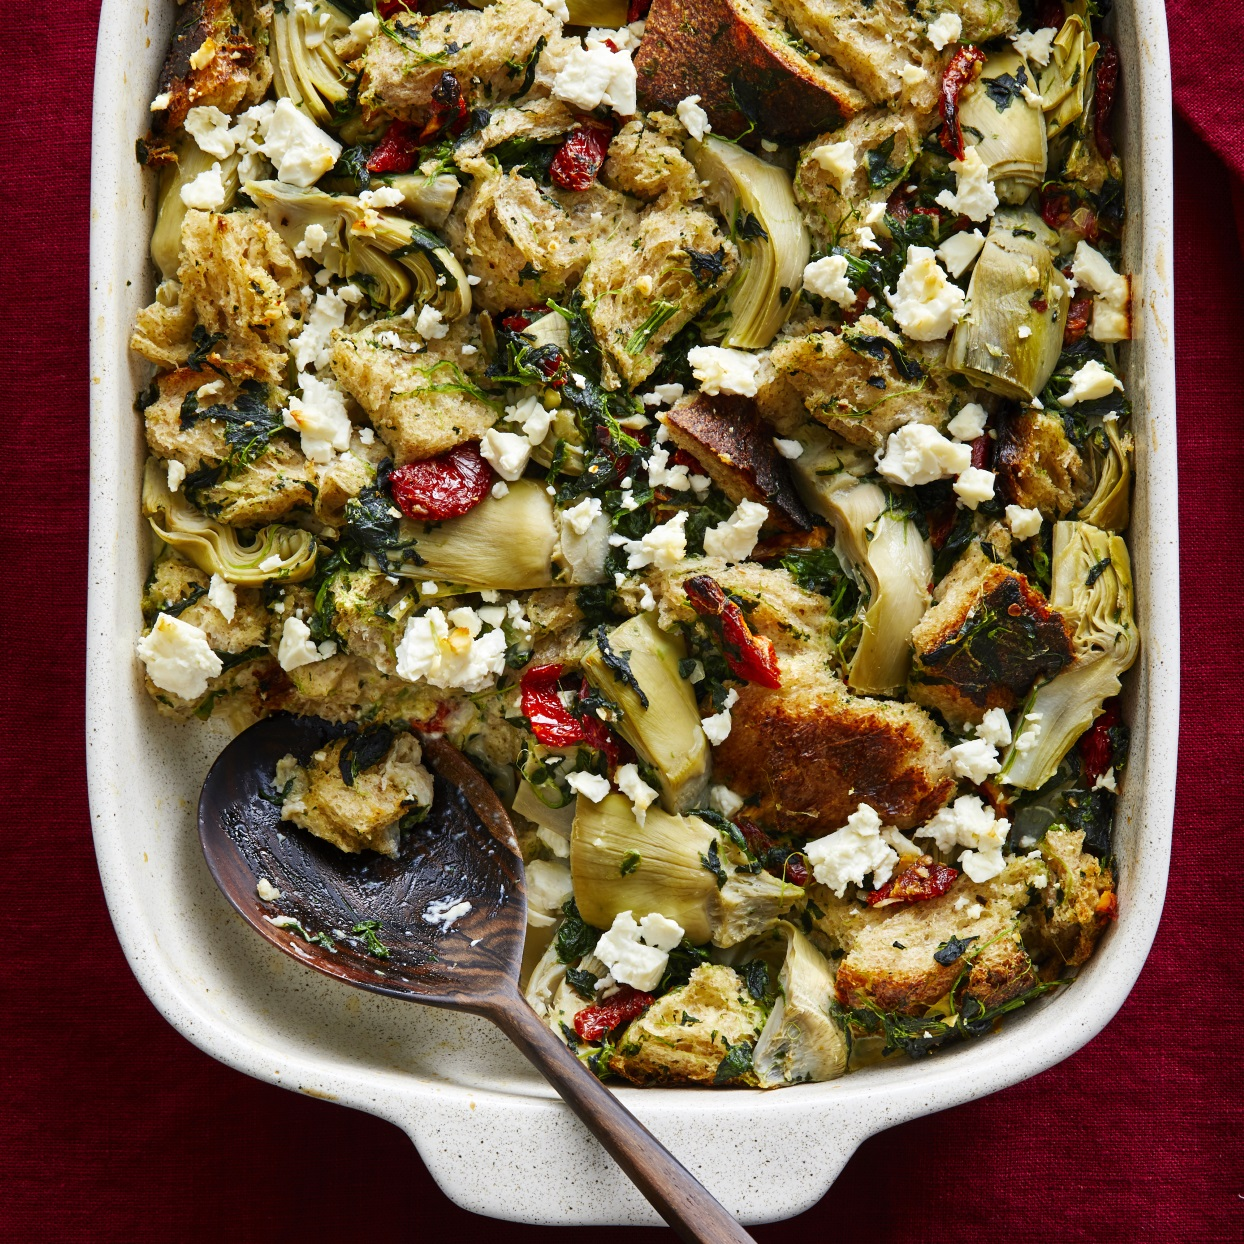 Enjoy this Mediterranean-inspired Christmas-morning casserole while you open presents. Breakfast casseroles are perfect for when you have a crowd to feed, and you can make the prep even quicker by tearing the bread into pieces the night before.Source: EatingWell.com, November 2019